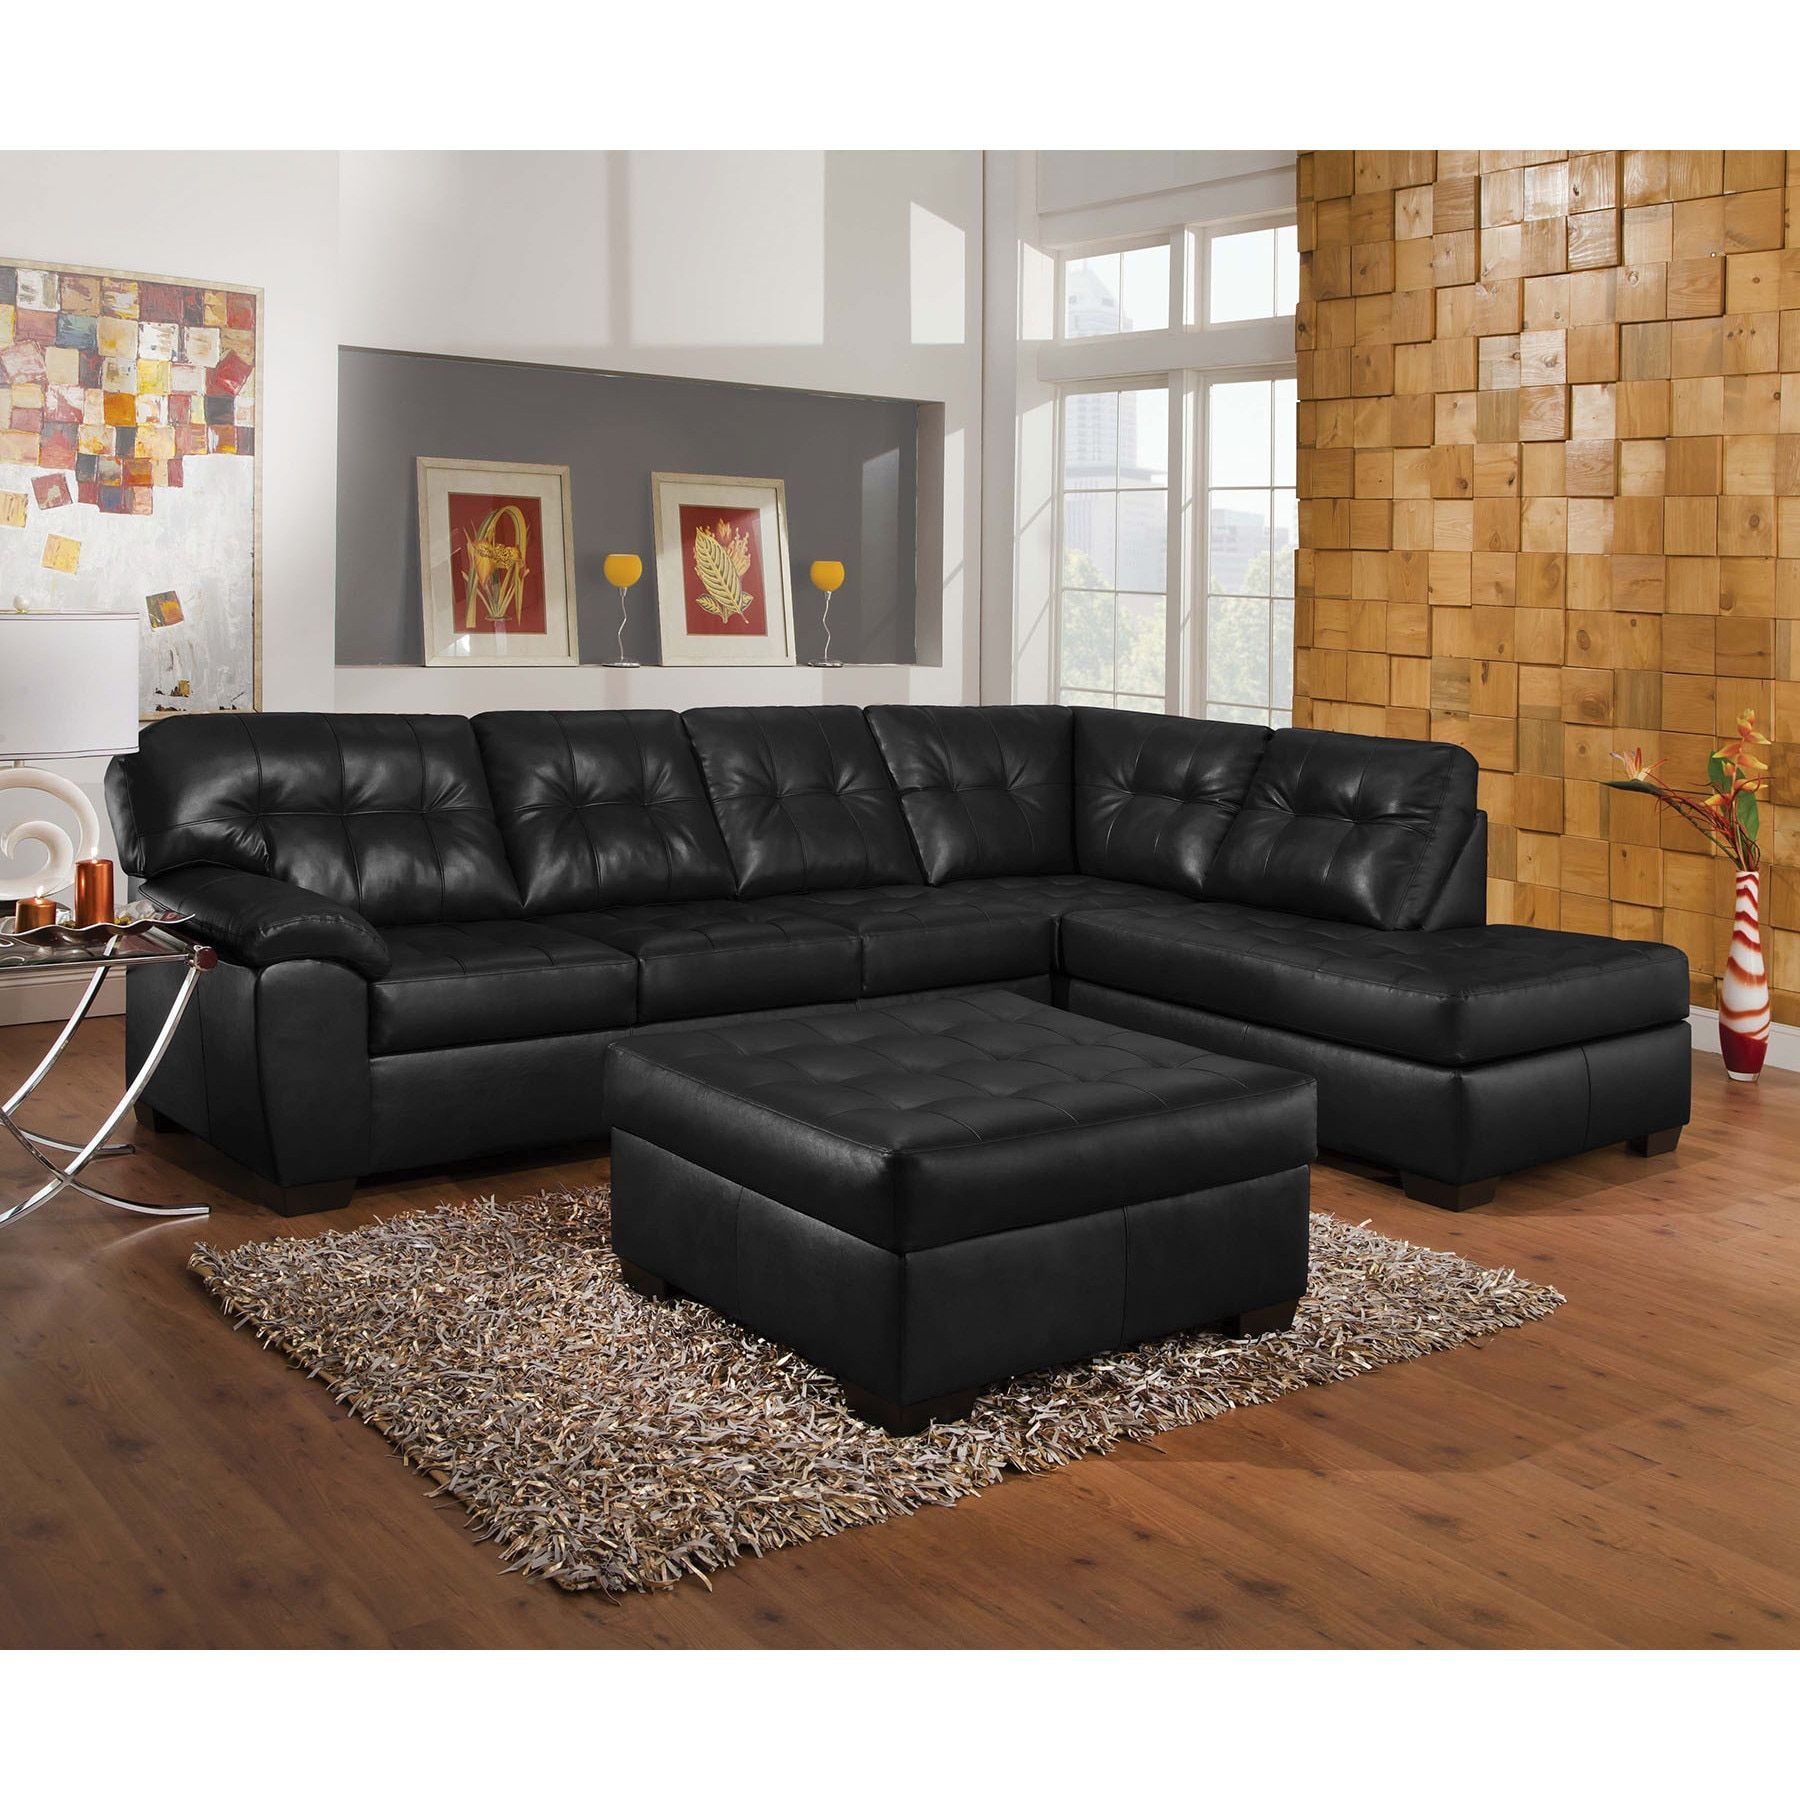 Shikura Onyx Leather Sectional Sofa Set With Ottoman (Black) (Foam)